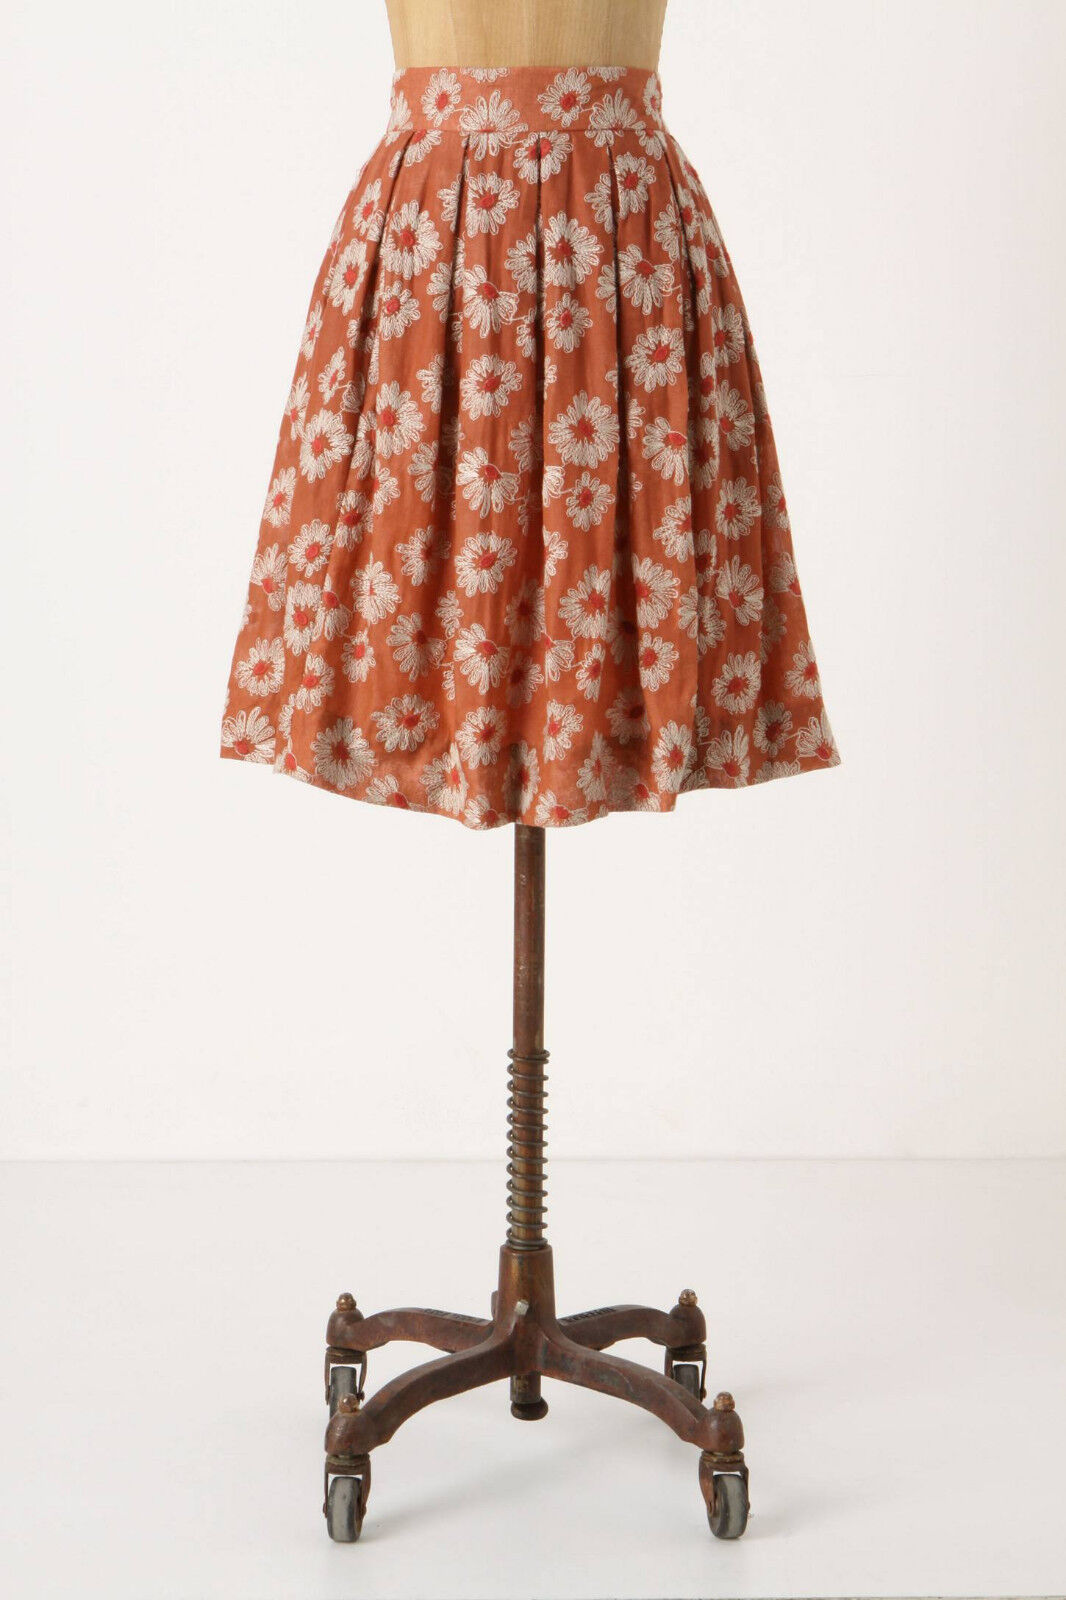 NWT Anthropologie Wallflower Skirt Size 8 by Plenty by Tracy Reese